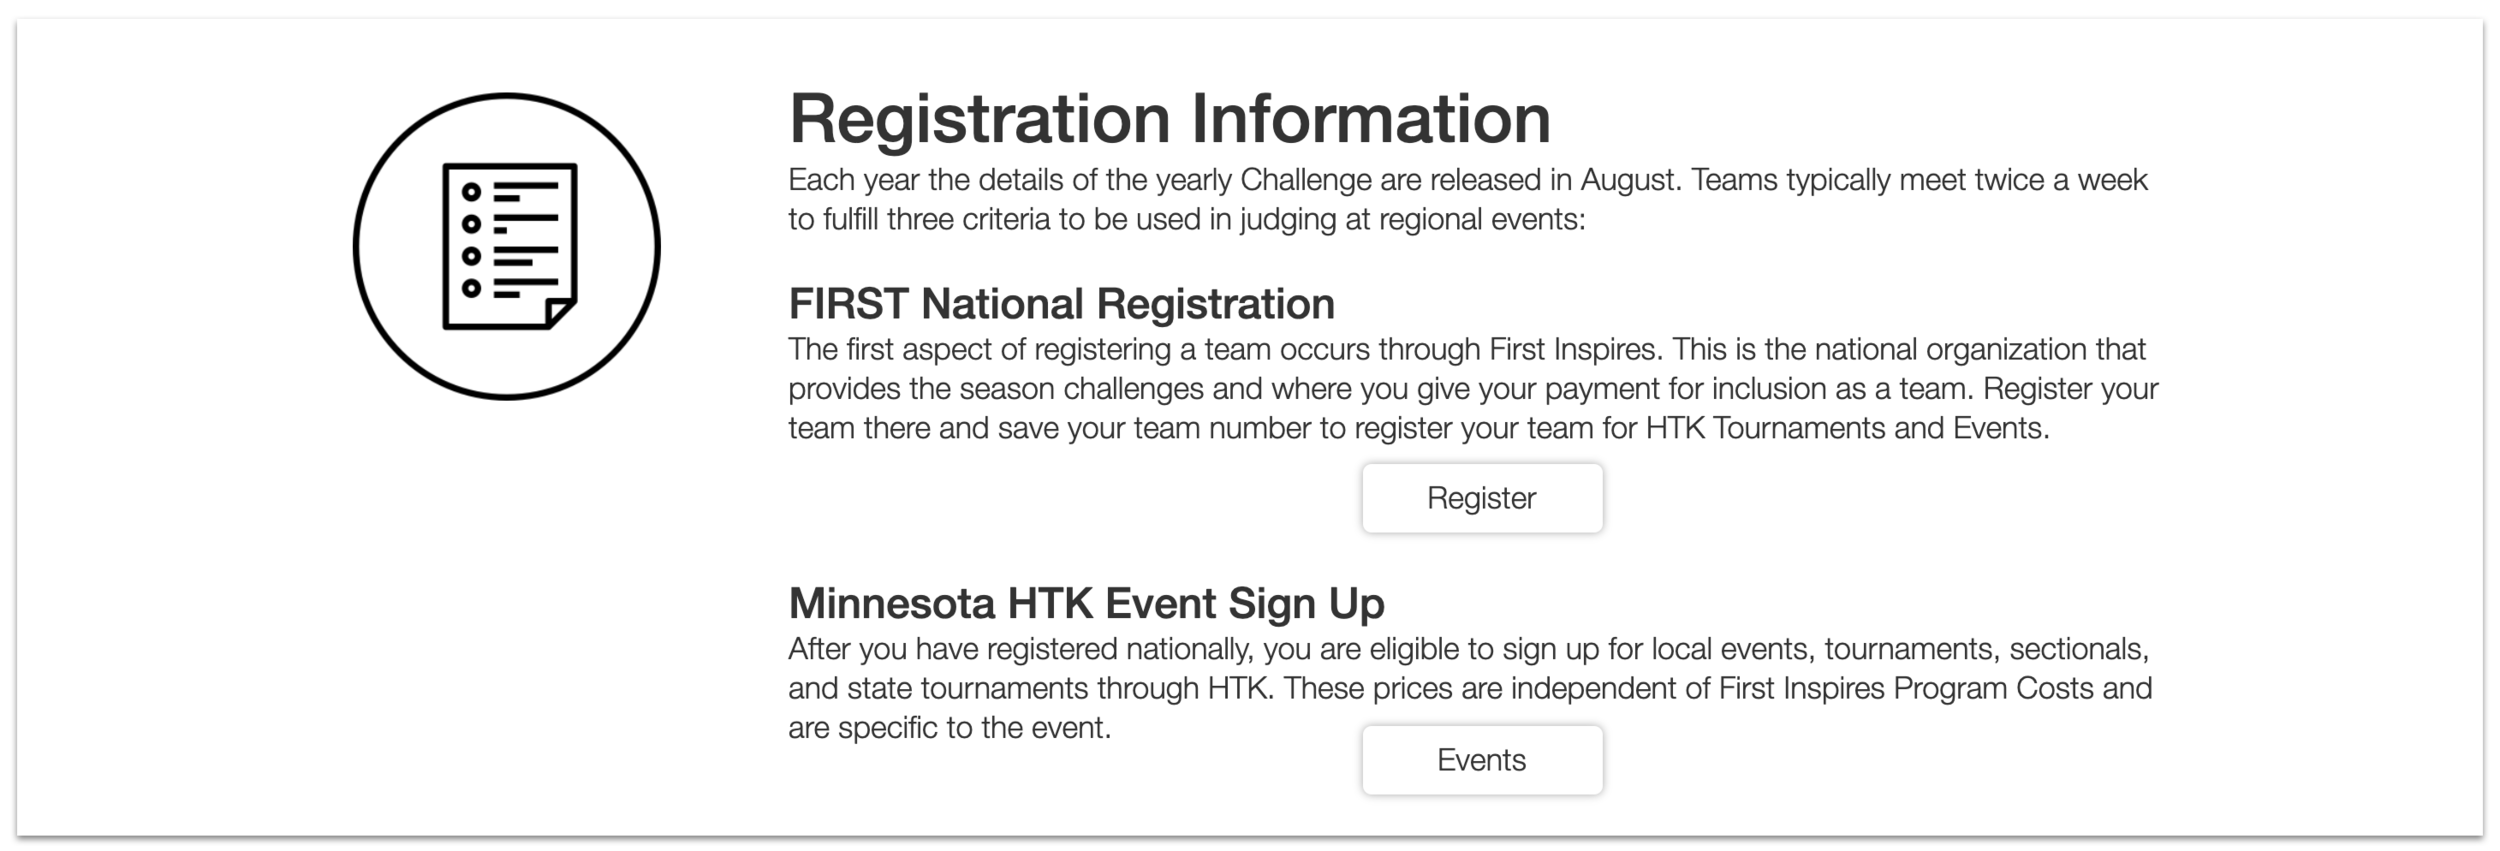 Registration and Events